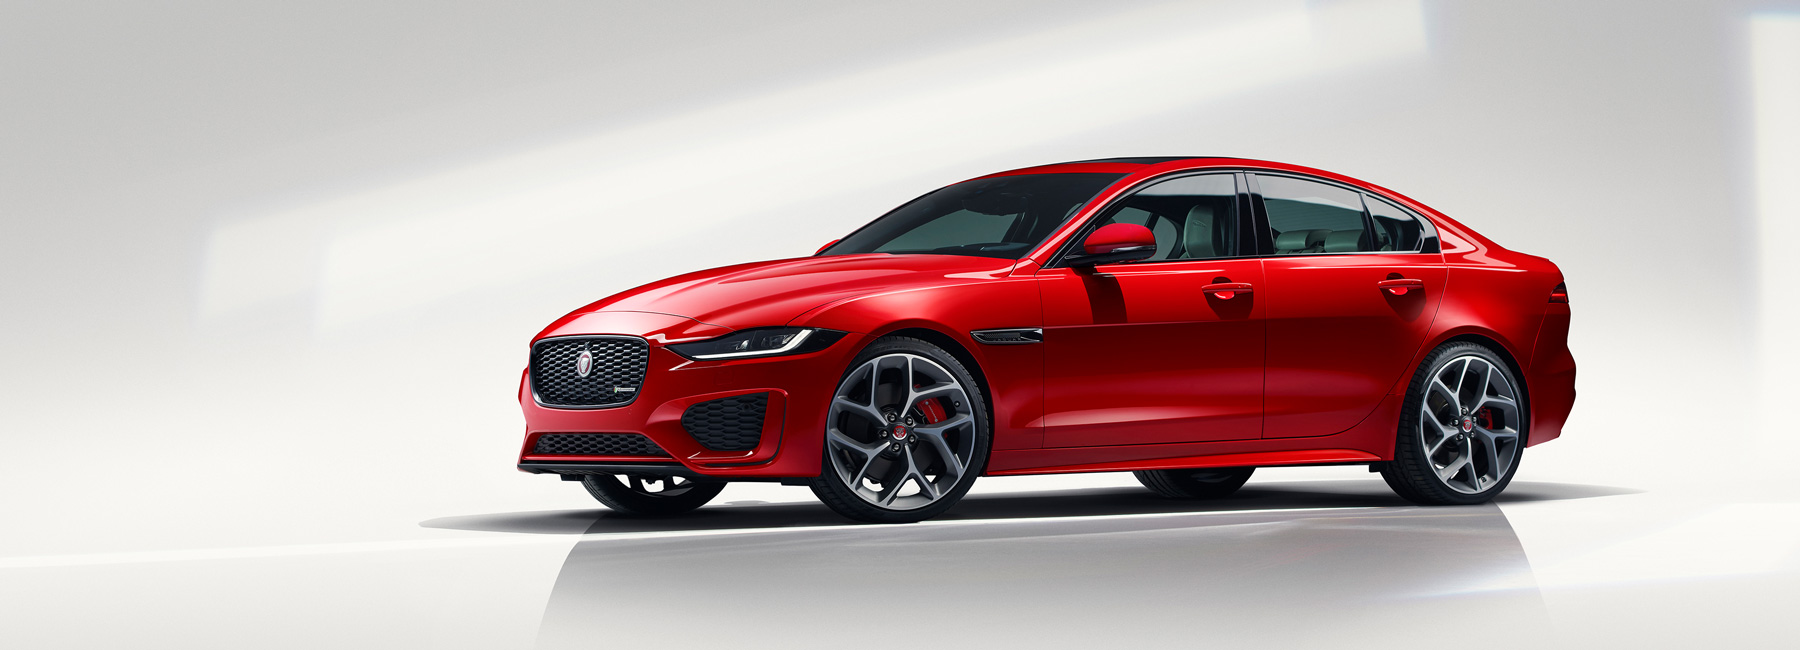 53 Best Review Jaguar Neue Modelle 2020 Specs for Jaguar Neue Modelle 2020